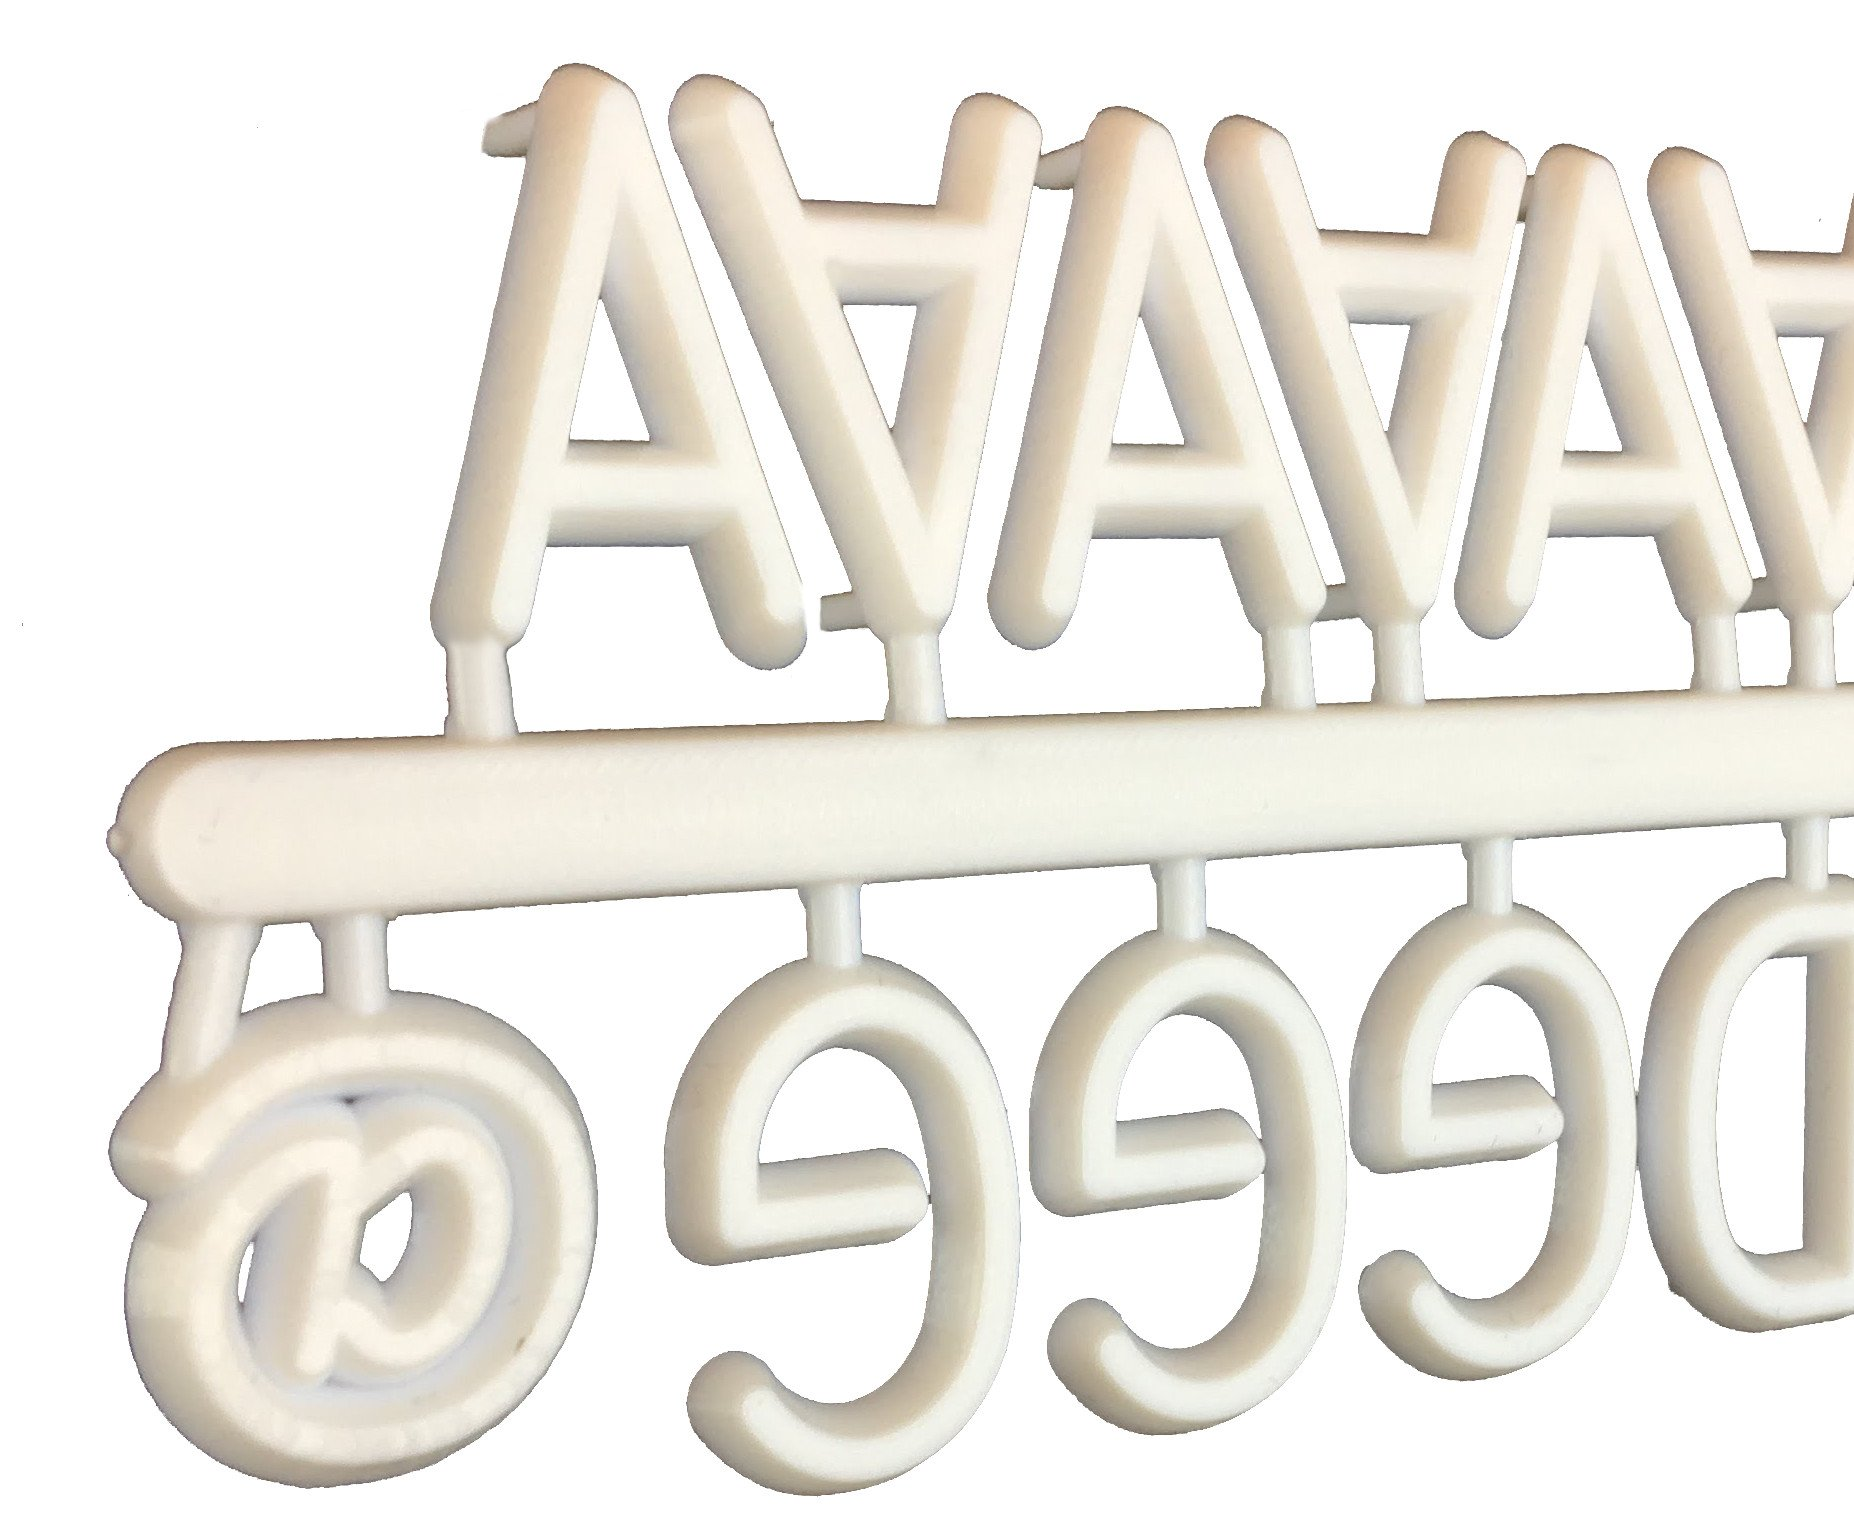 White Letters for Letter Board - 3/4 (.75) Inch - 380 Changeable Plastic Characters with Alphabet, Numerals, Punctuation, Symbols and Emojis - Perfect Add On for Your Letter Board - by Kefela